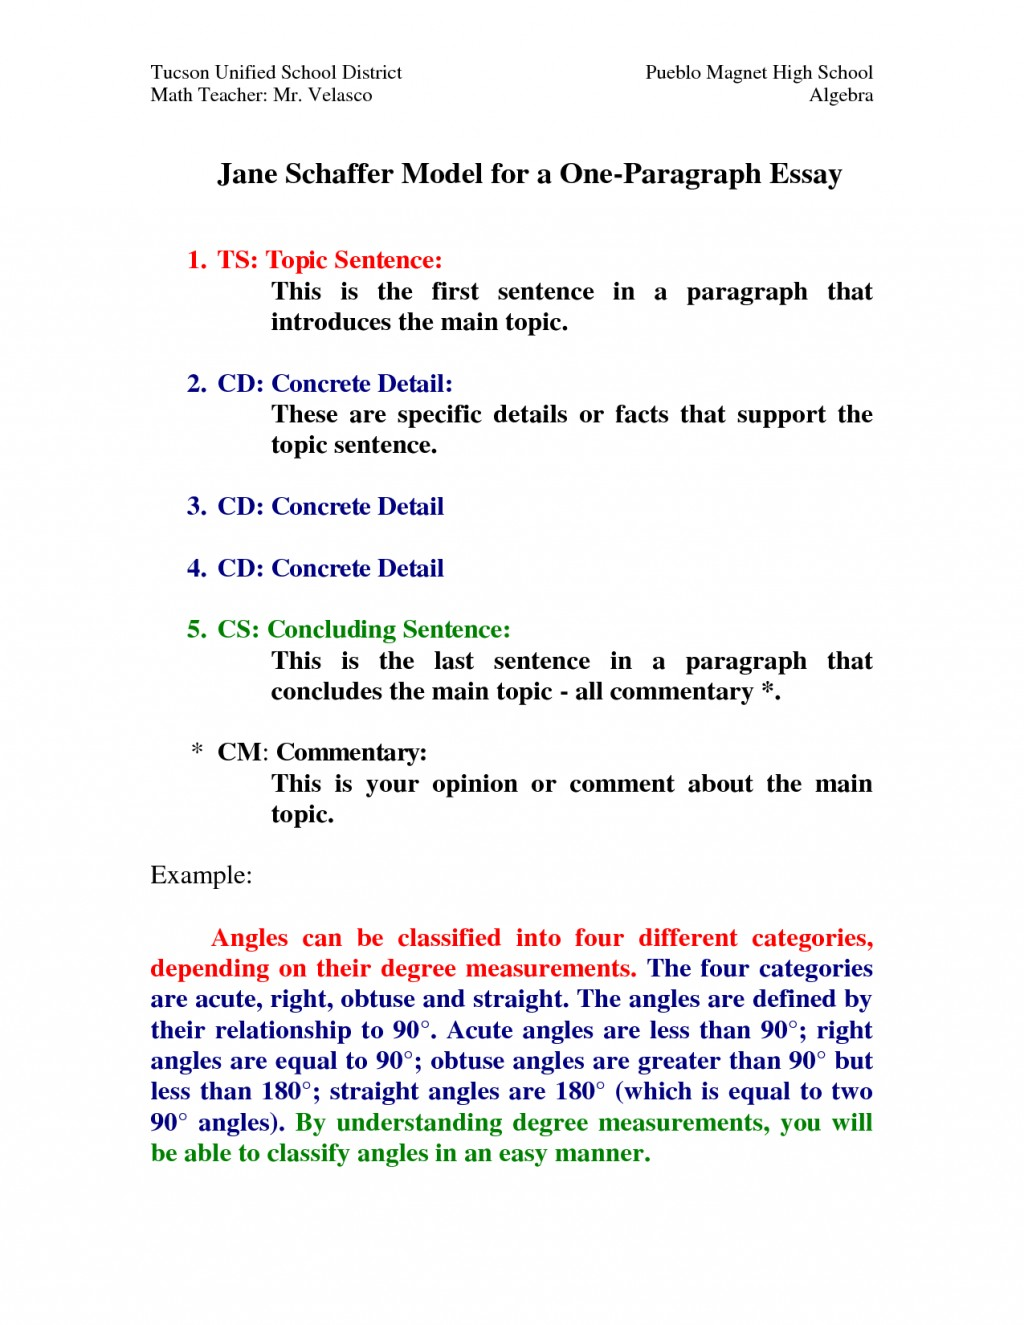 001 Essay Example One Awesome Paragraph About Dwarfism Topics Large